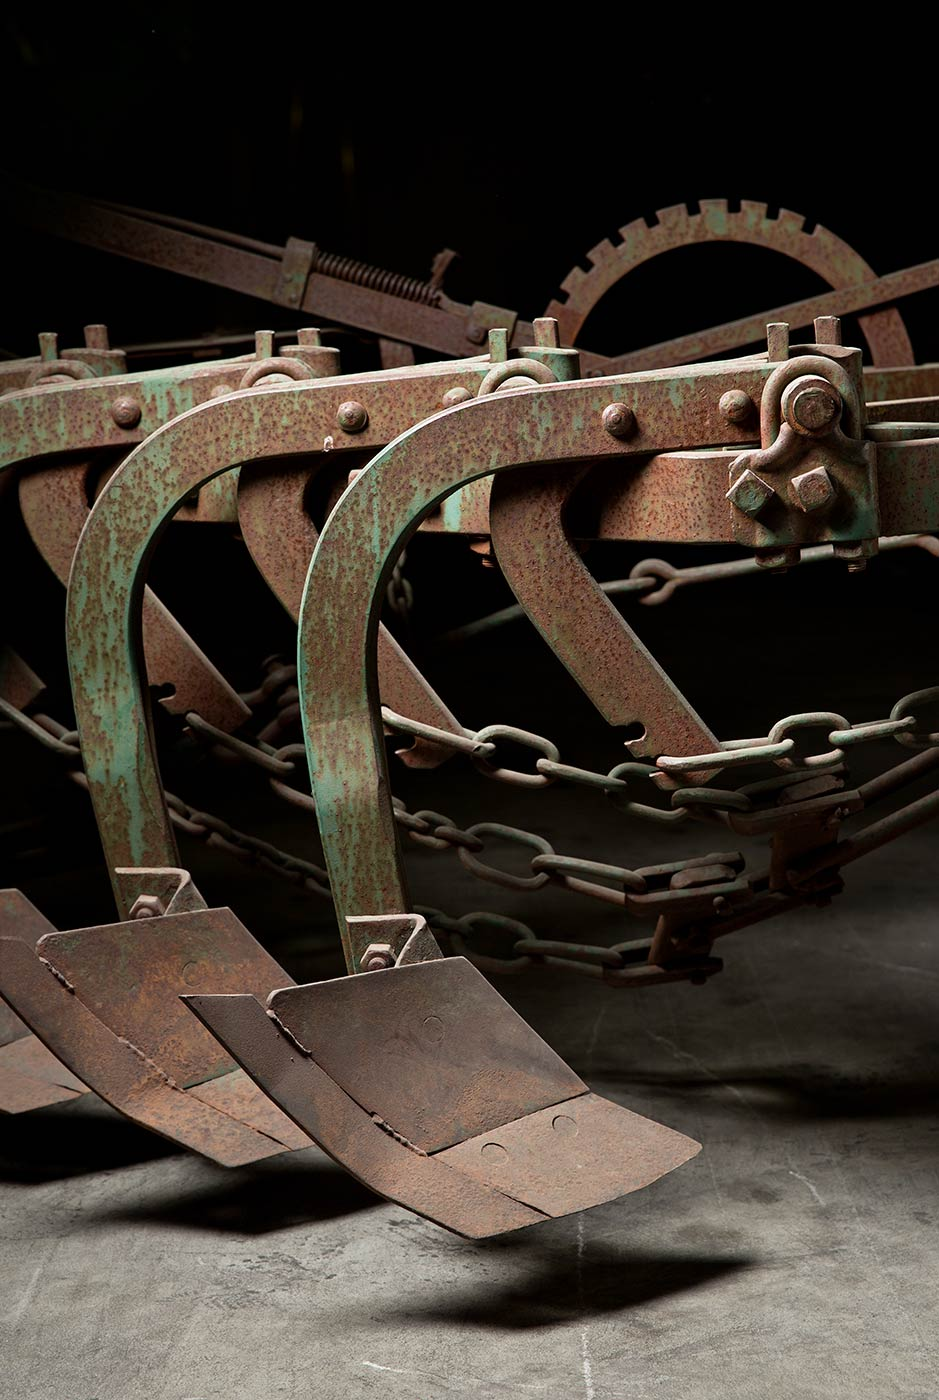 Chains, a lever and two plough blades. - click to view larger image